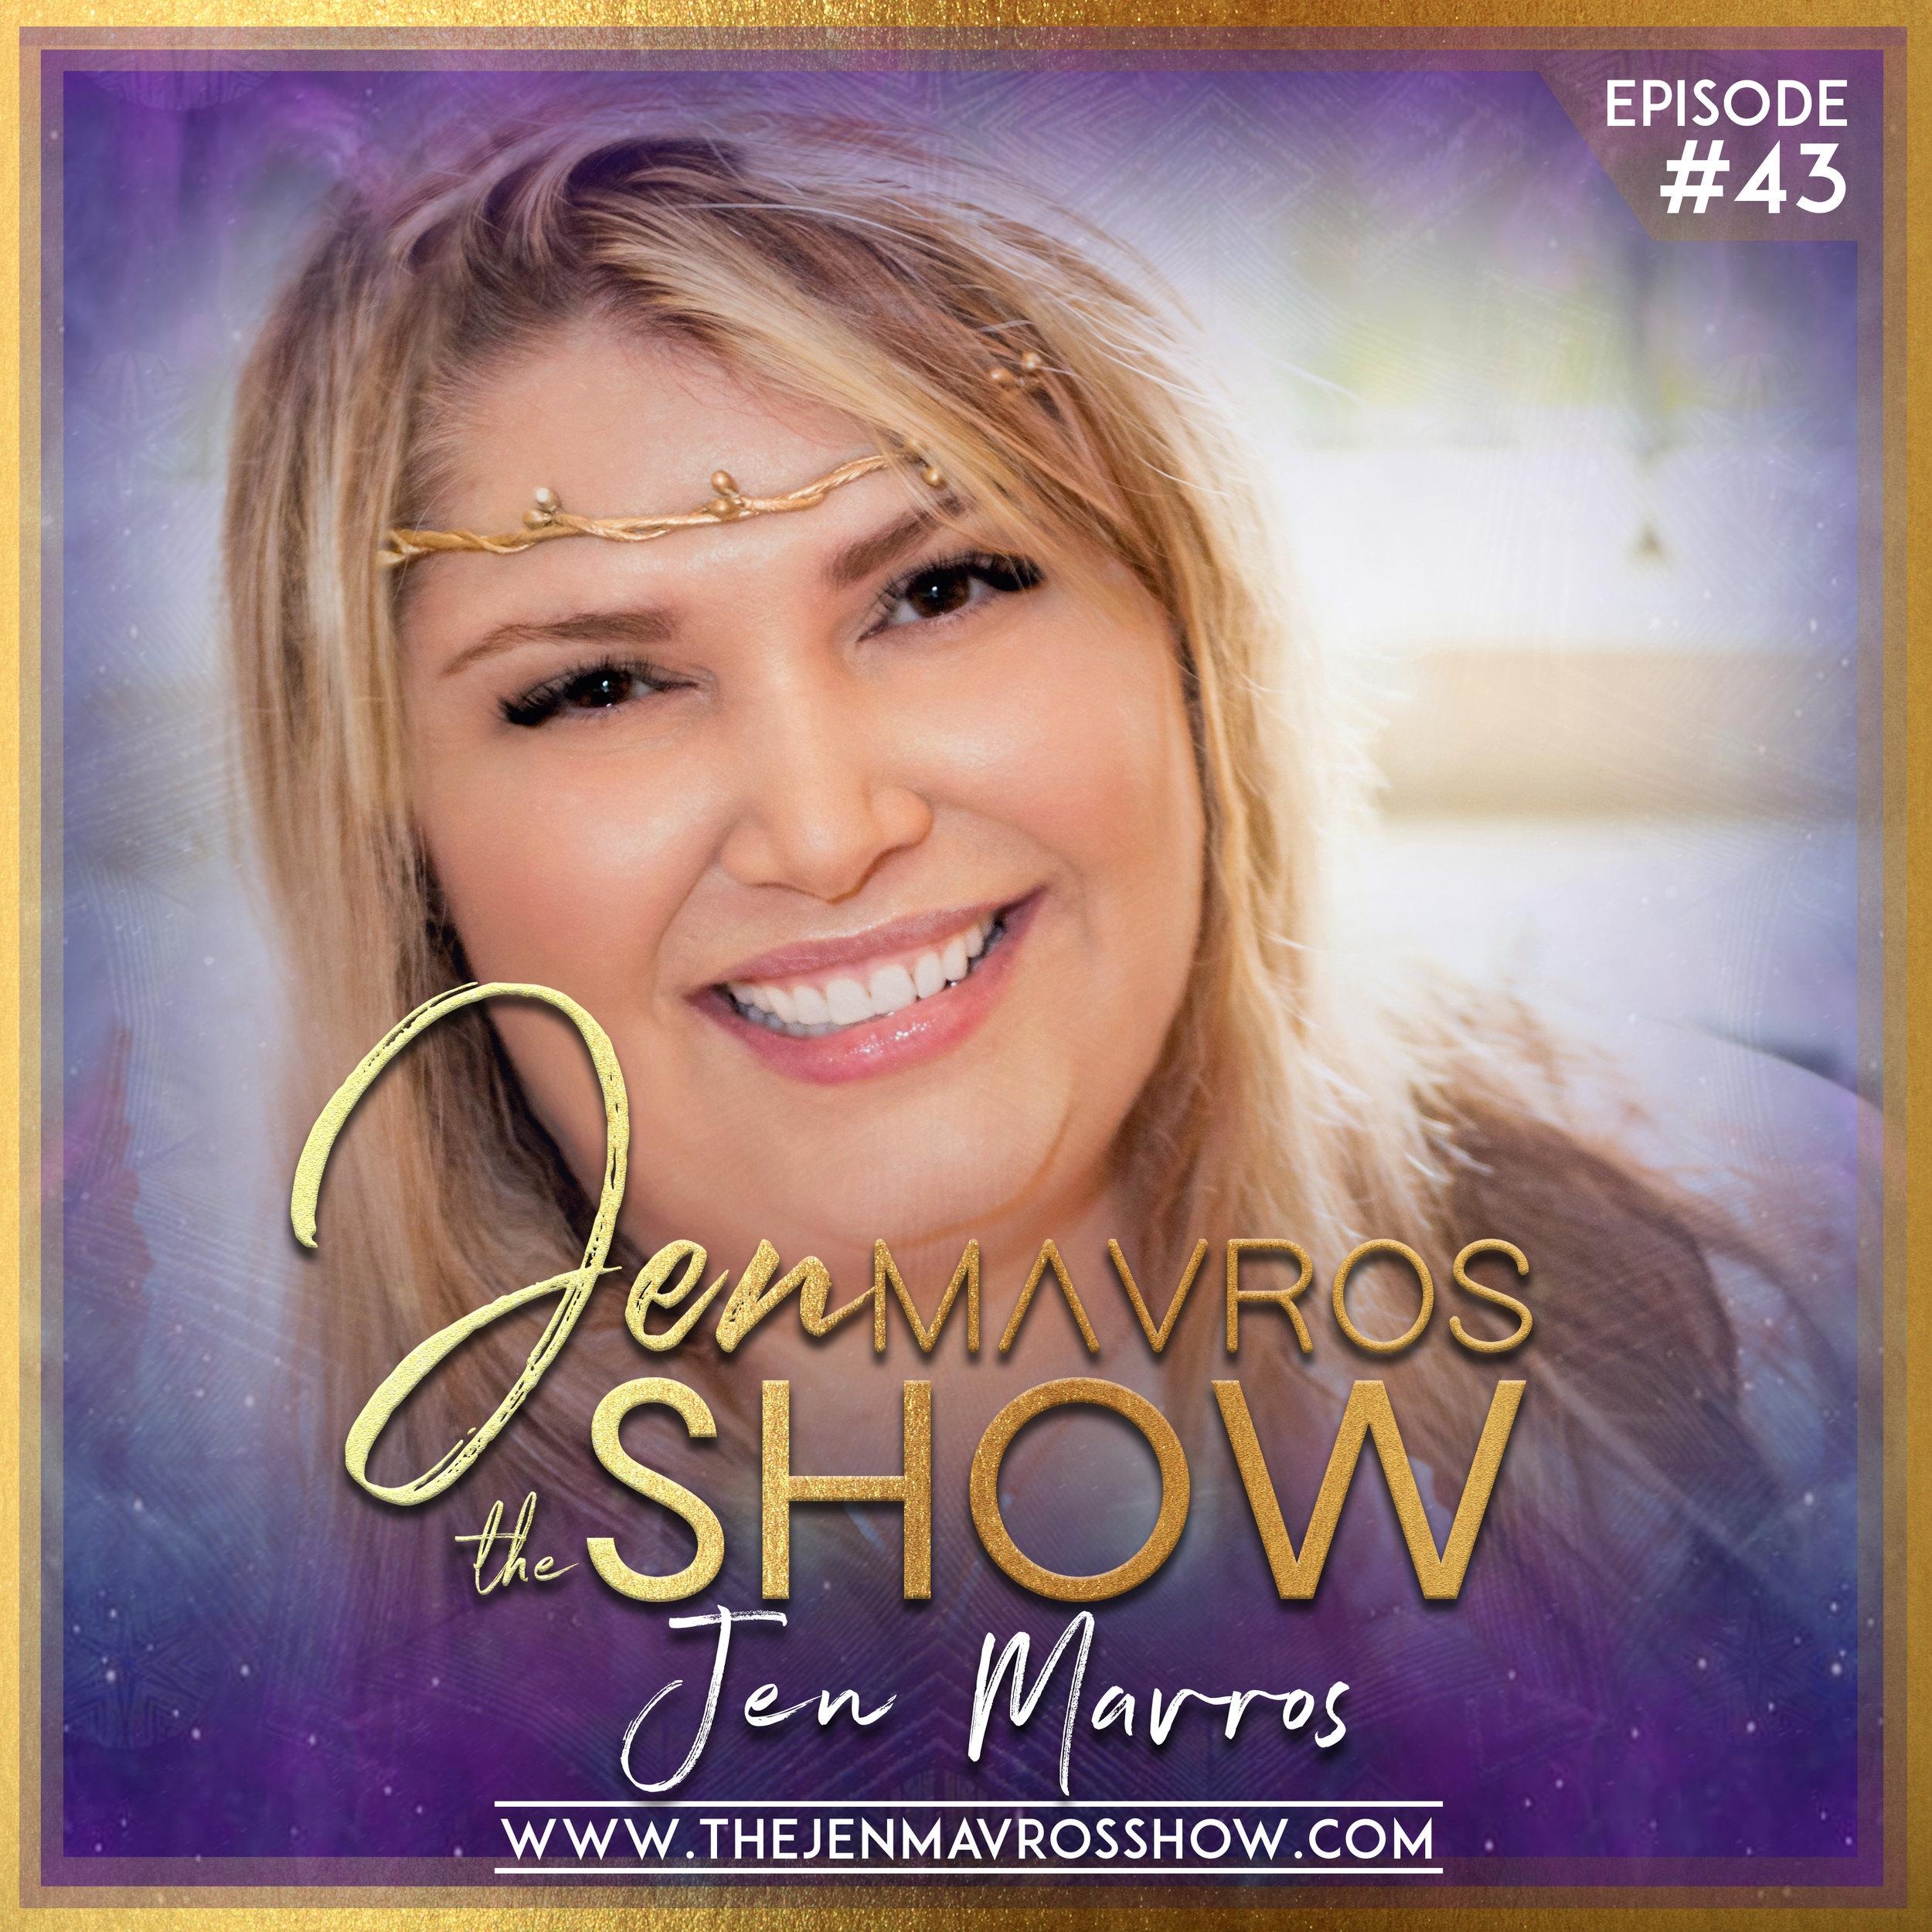 Jen Mavros - SEASON ONE FINALEYou're not going to want to miss this one loves.Tune into Jen's first master class here on The Jen Mavros Show. An episode to surely support you on your soulful journey. We're talkin'Gratitude. Learn her soul-inspiring five step method to help you achieve the most rewarding daily Gratitude Practice, why you want to and hear about the EXCITING AWESOMENESS coming up for Season Two.